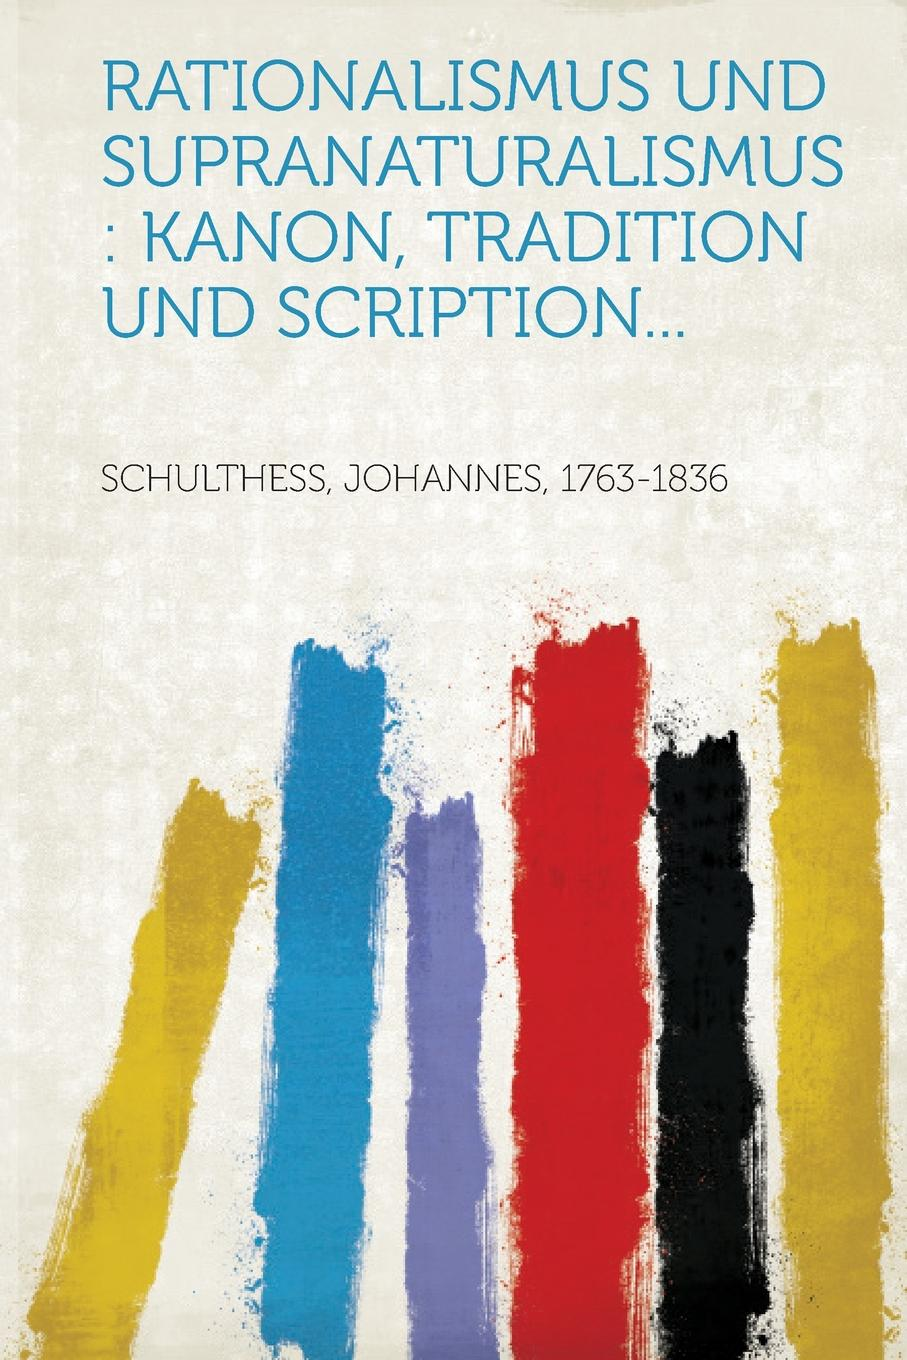 Rationalismus und Supranaturalismus. Kanon, Tradition und Scription... johannes schulthess rationalismus und supranaturalismus